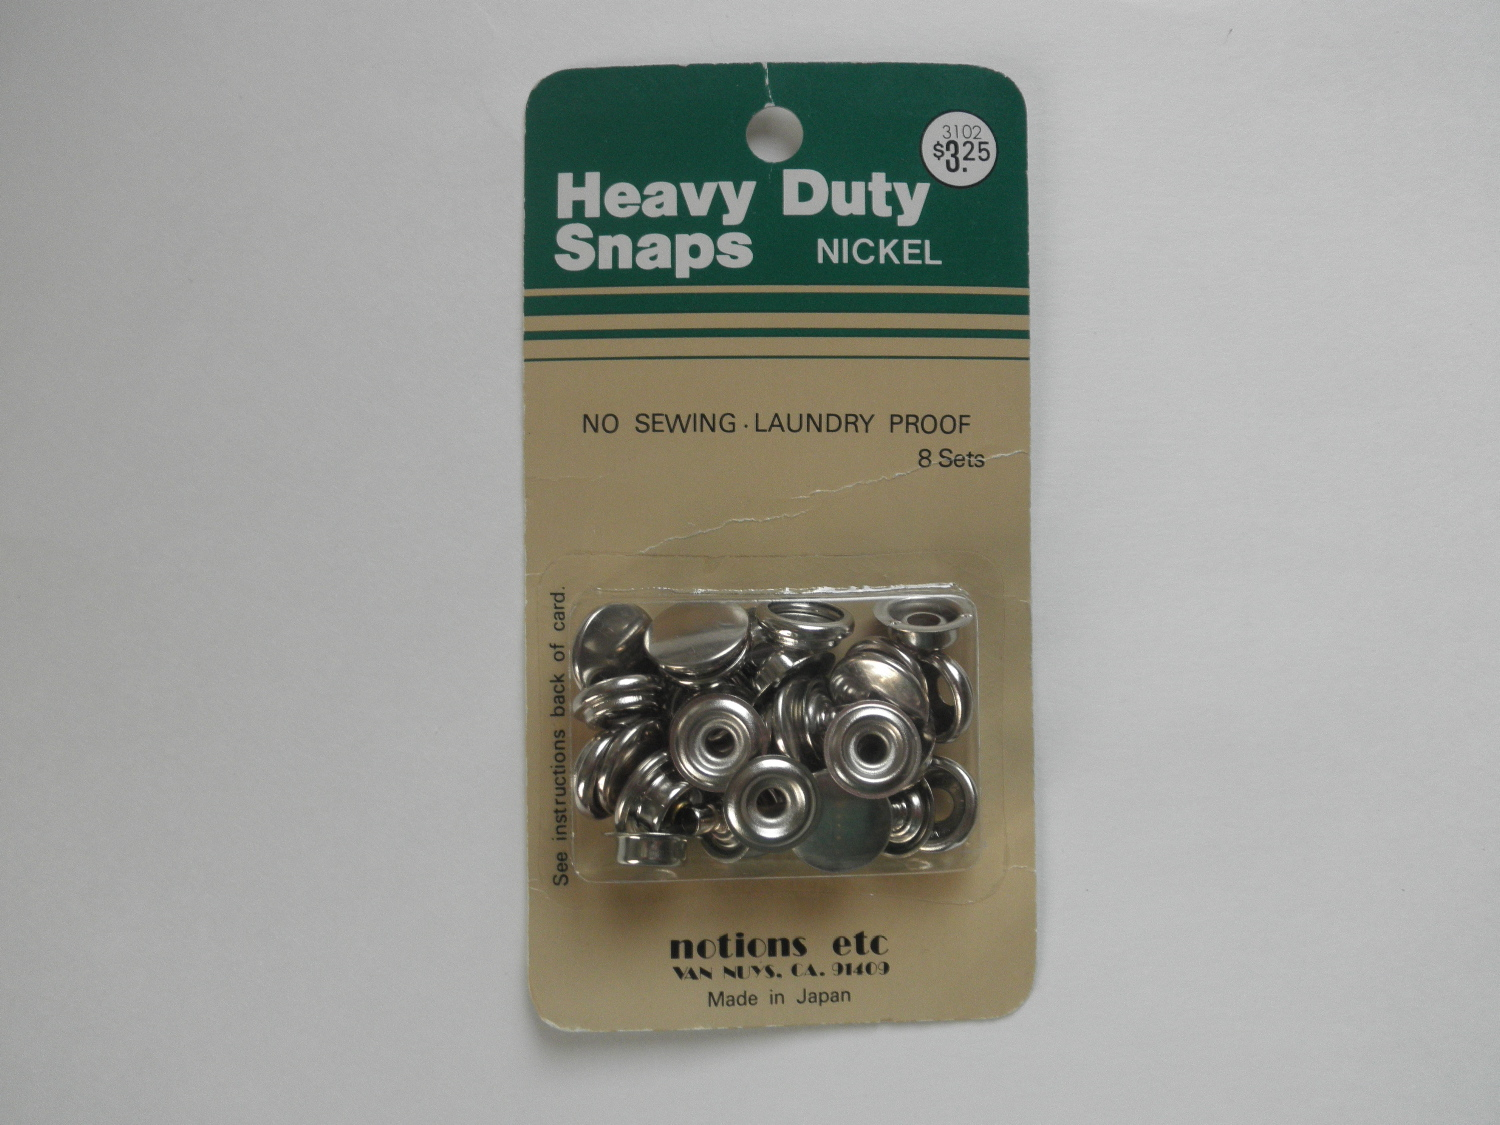 heavy duty snaps